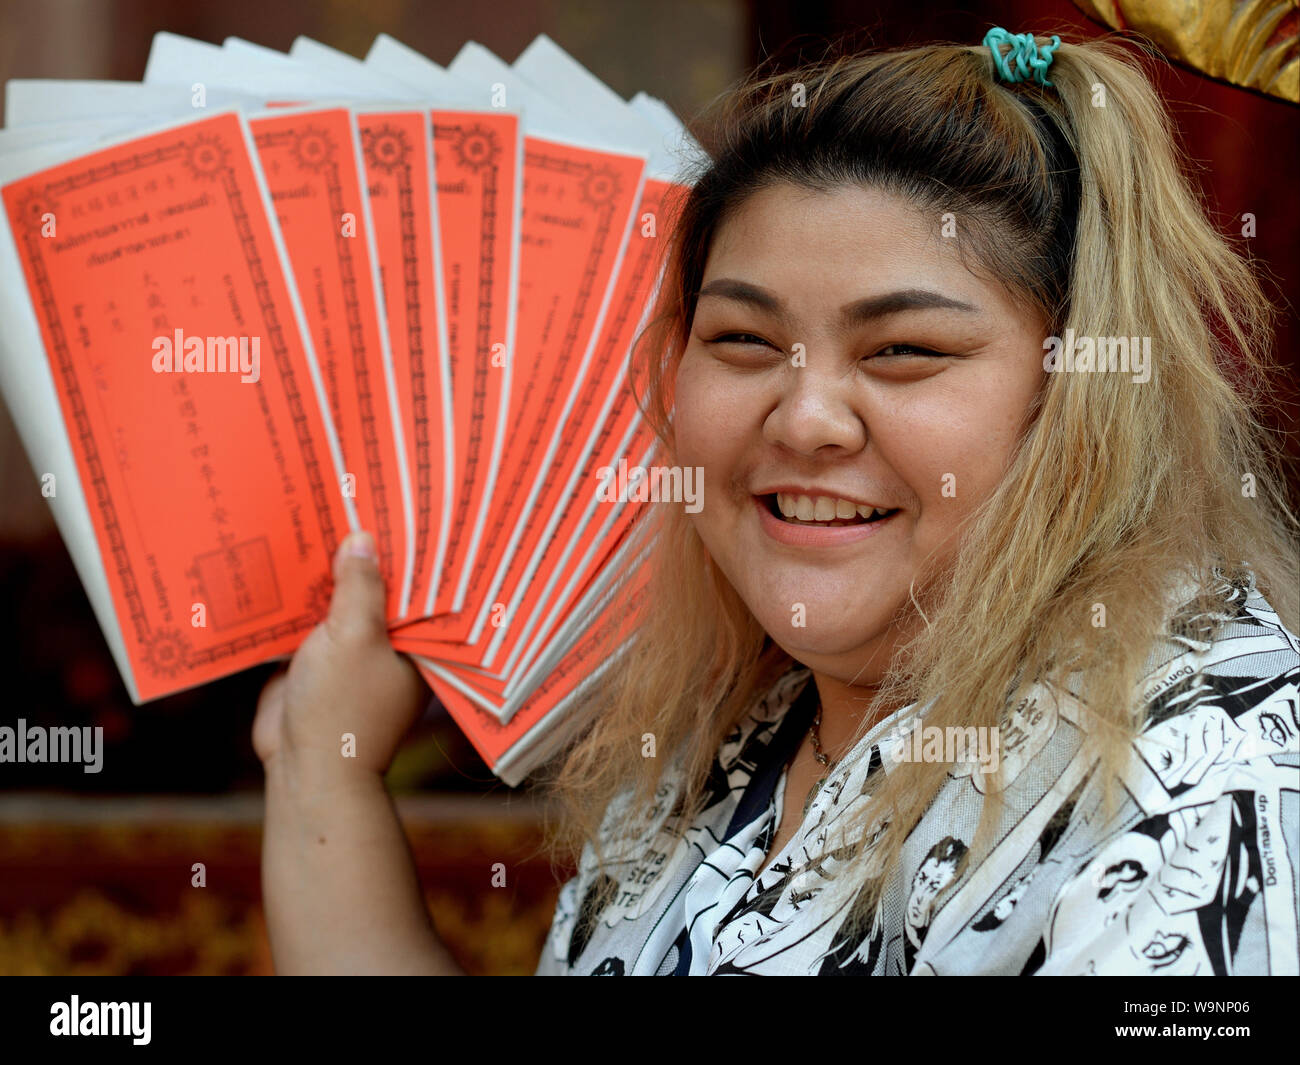 Young, full-figured Thai Chinese woman shows sheets of joss money and smiles for the camera. Stock Photo